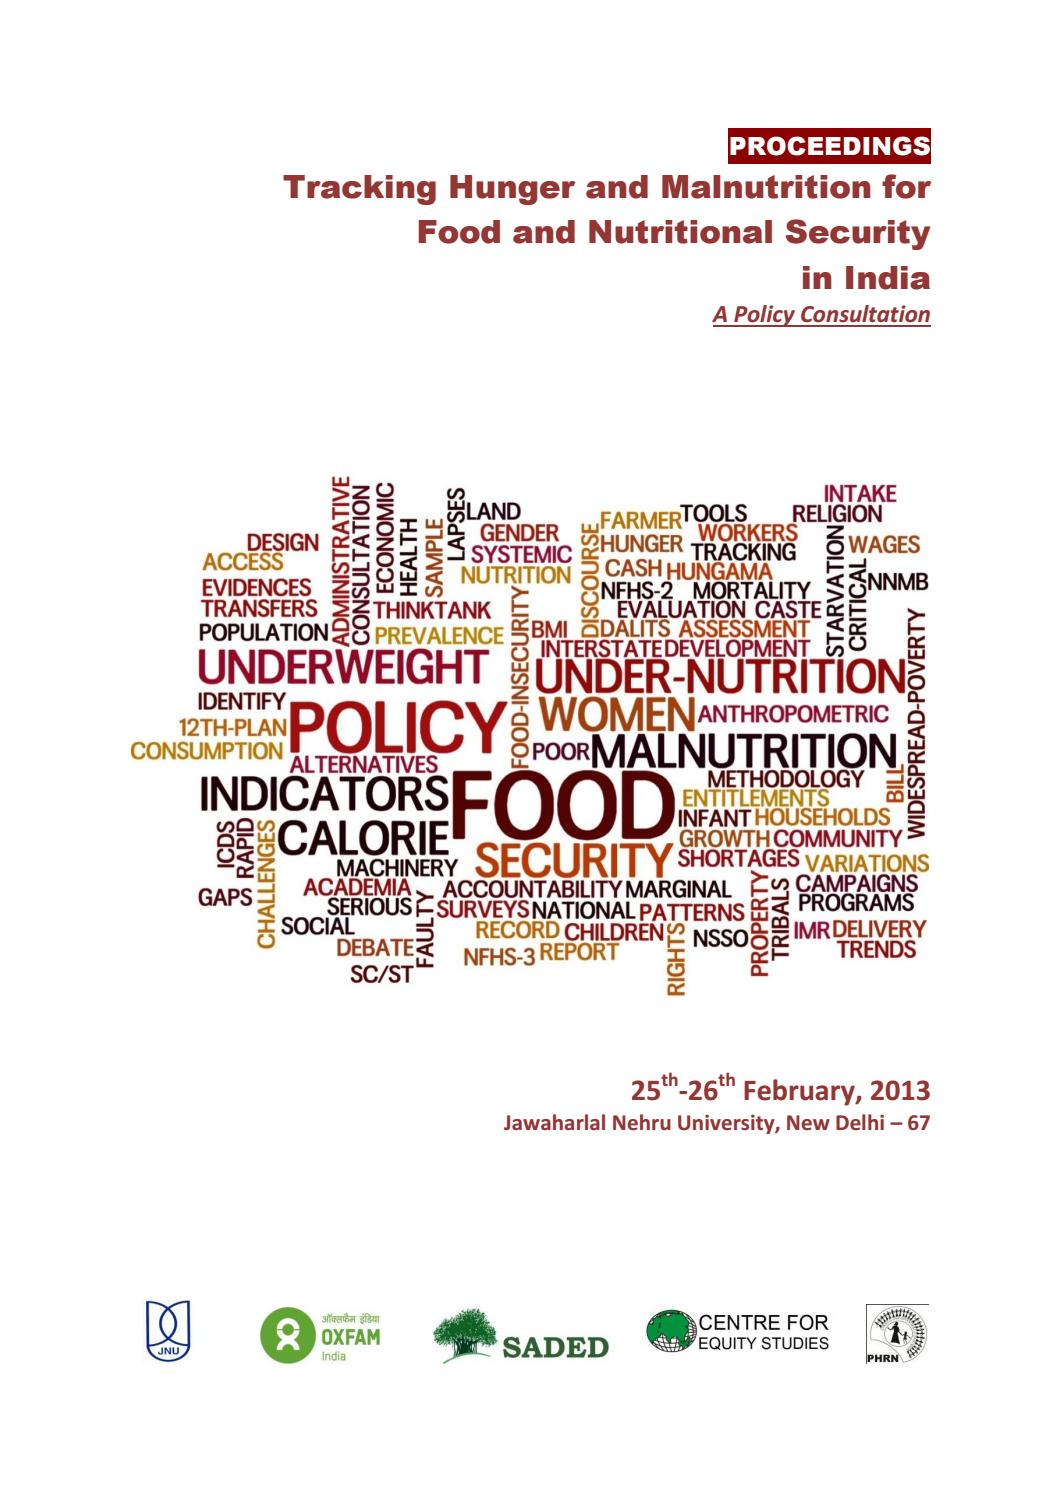 Tracking Hunger And Malnutriton for Food and Nutritional Security